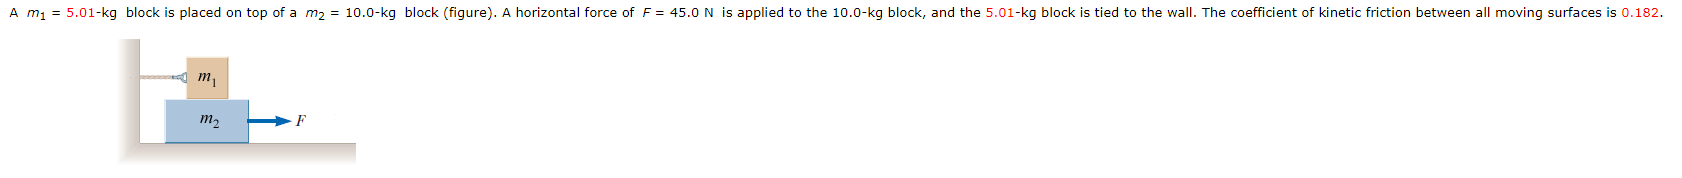 on top of a m2 - 10.0-kg block (figure). A horizontal forc e of F 45.0 N is applied to the 10.0-kg block, and t kg block, and the 5.01-kg block is tied to the A m1 wall I. The coefficient of kinetic friction between all moving surfaces is 0.182. m,